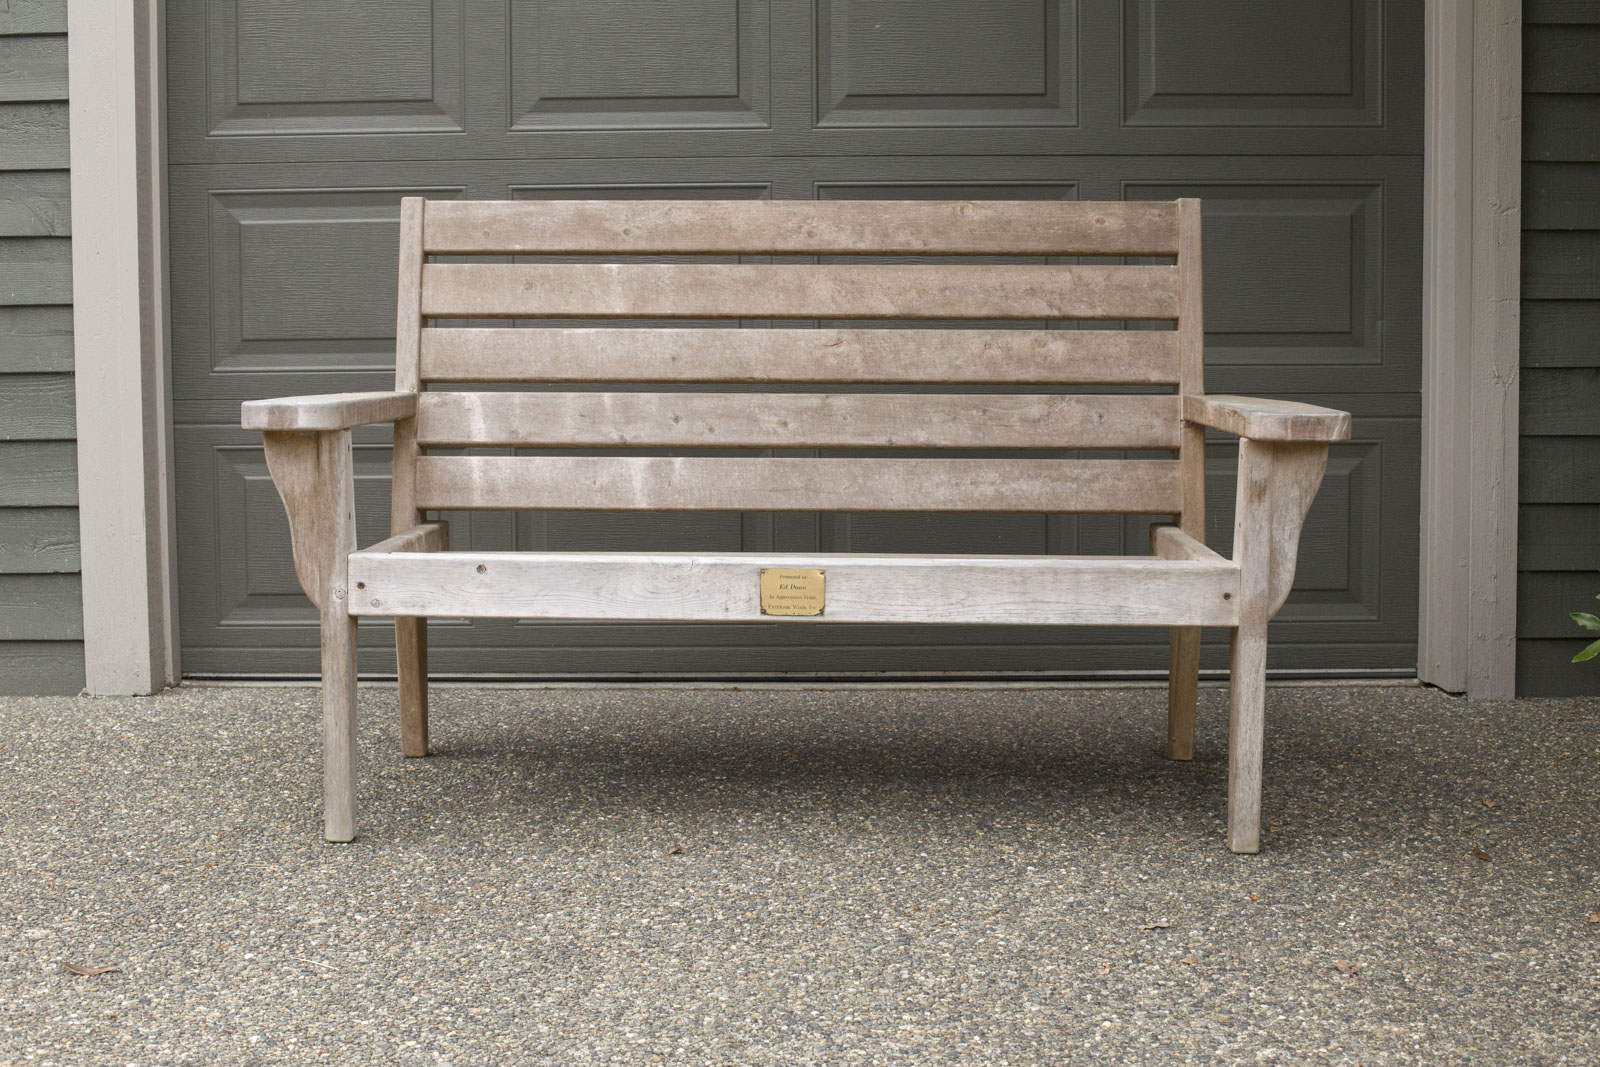 refinished weathered bench